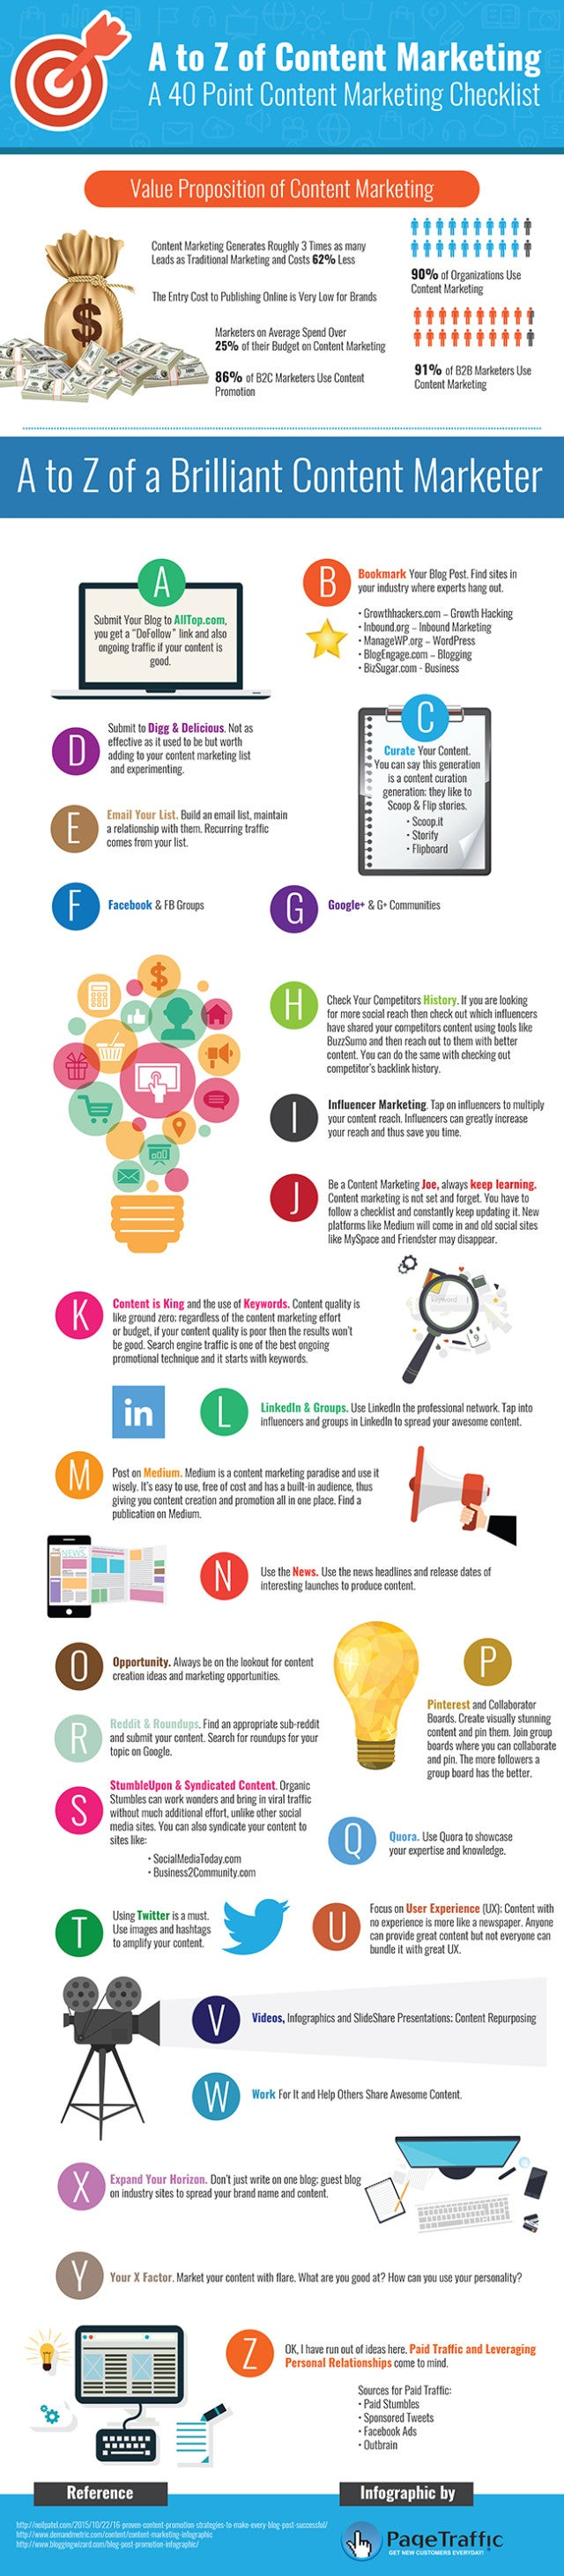 Content-Infographic-image